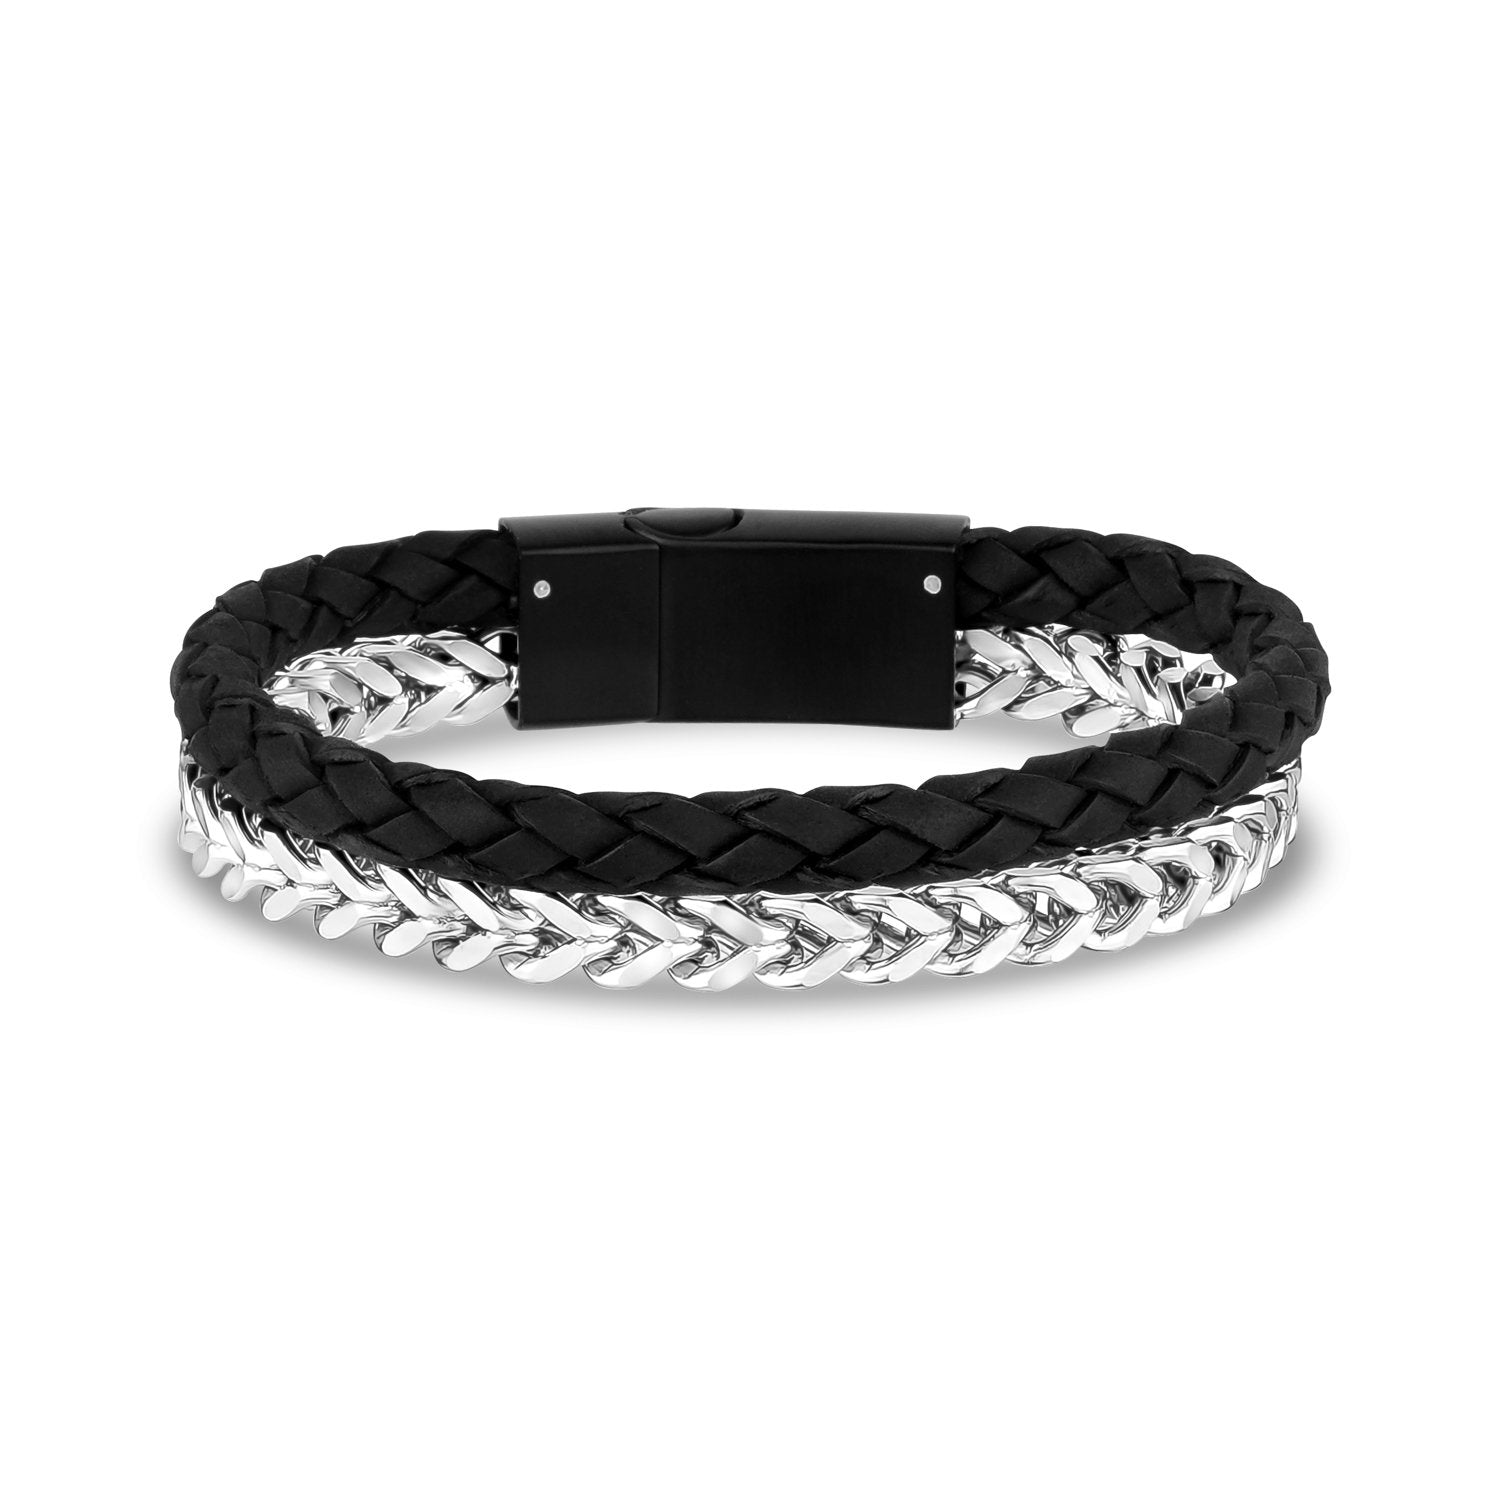 Mens Steel Leather Bracelets - Franco Link + Black Leather Steel Clasp Bracelet - Engravable